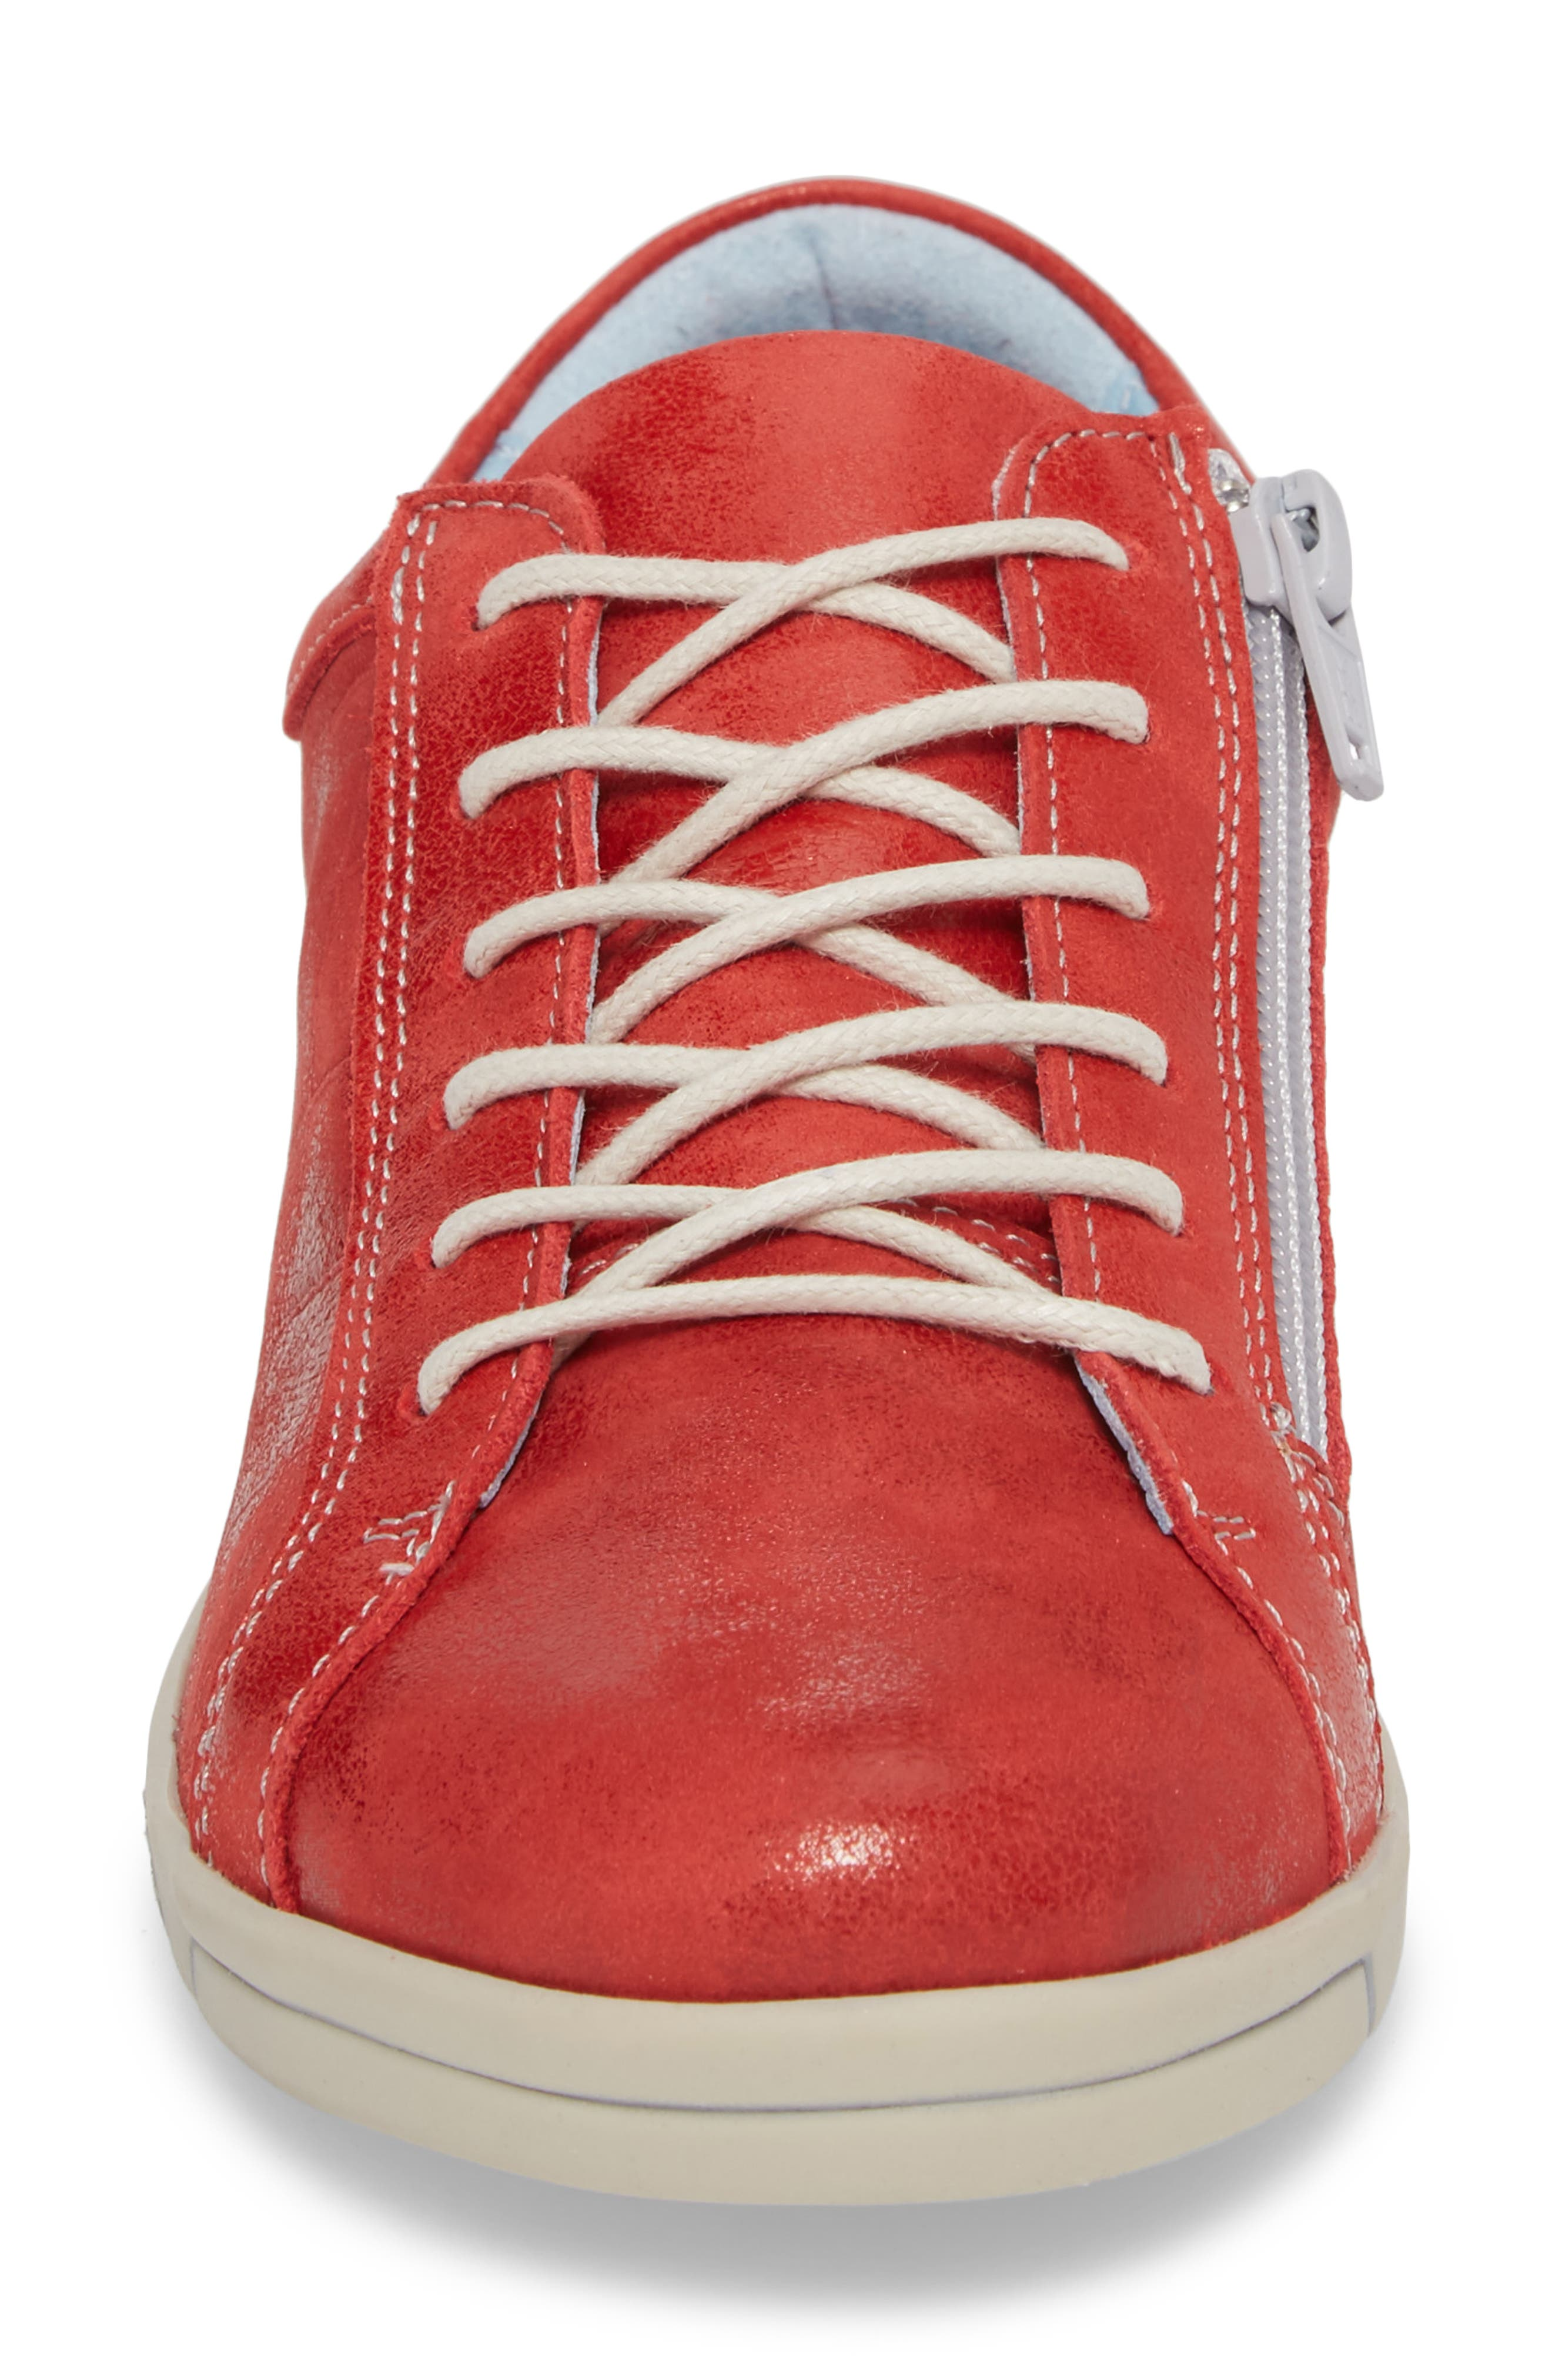 Alessia Sneaker,                             Alternate thumbnail 4, color,                             Red Stinger Leather